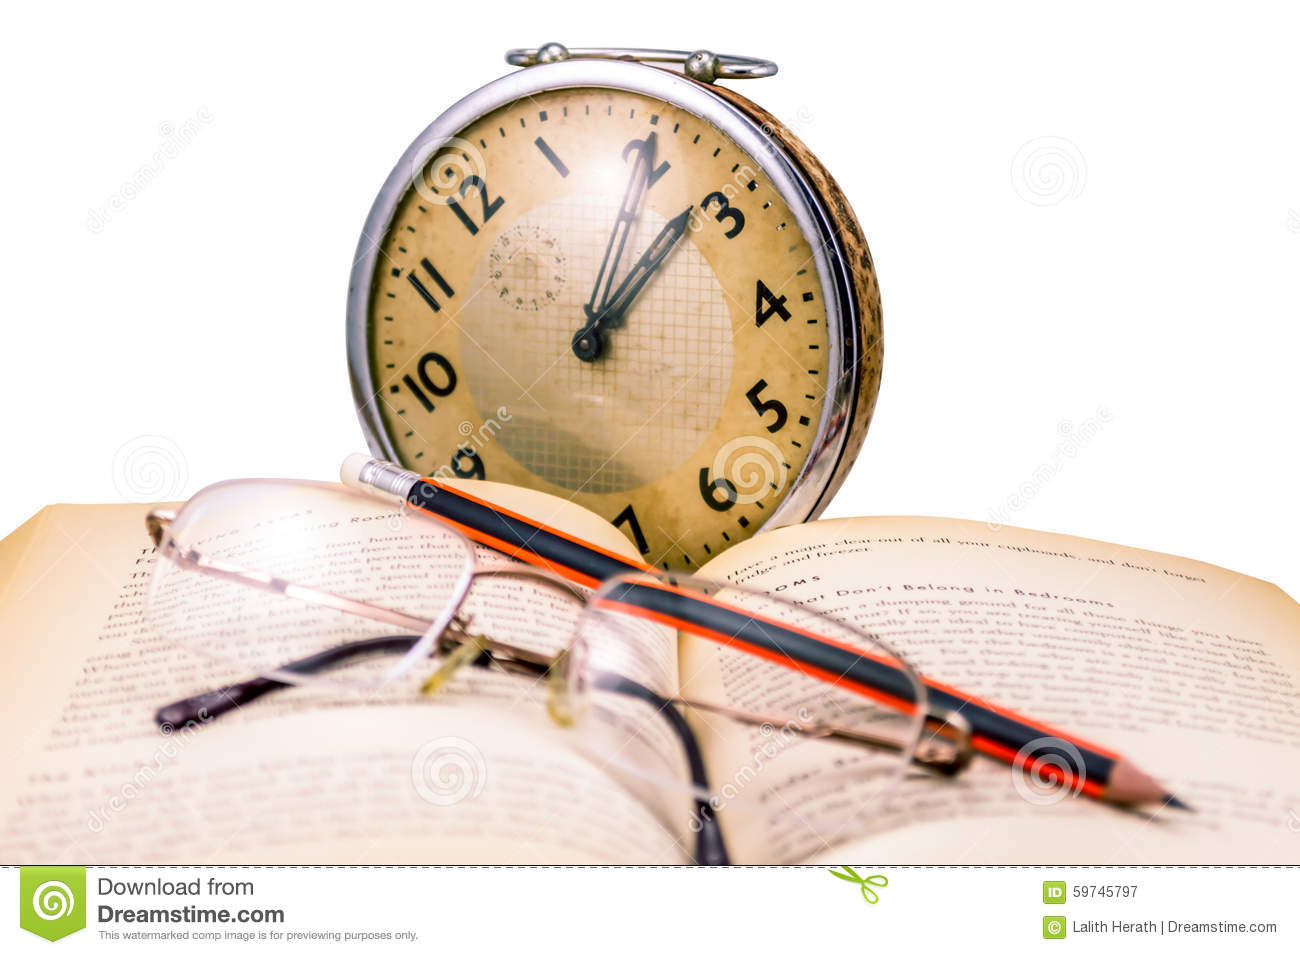 Reading in old age stock image  Image of book, page, clock - 59745797